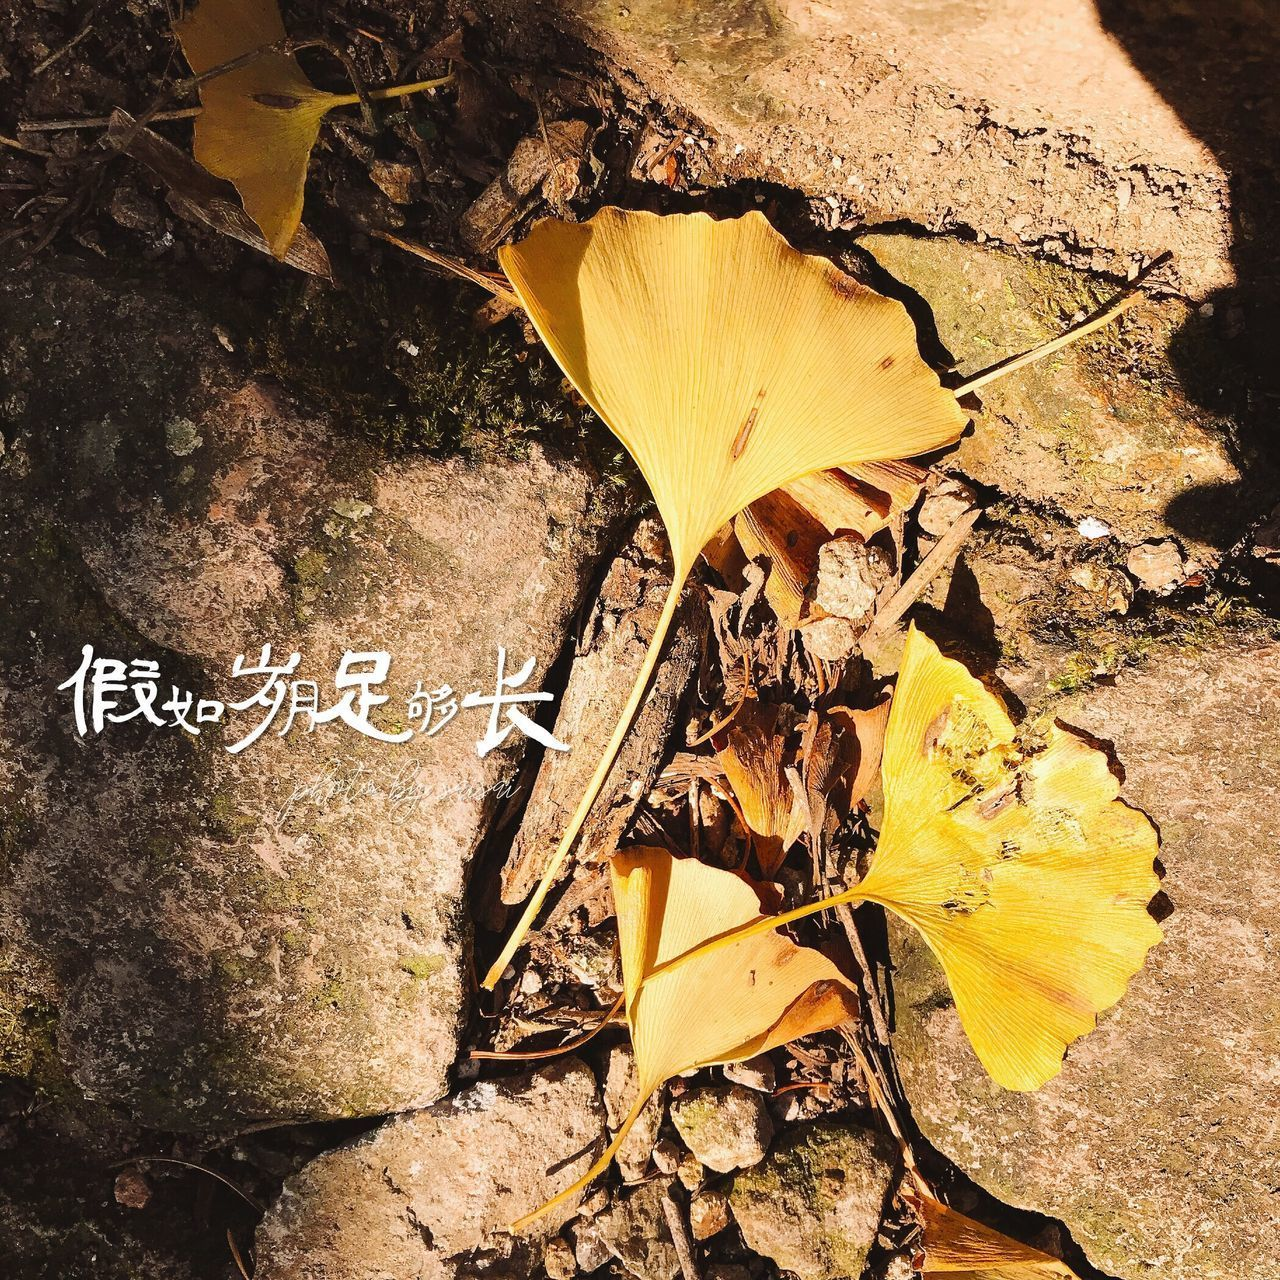 leaf, autumn, change, dry, nature, day, outdoors, yellow, high angle view, no people, beauty in nature, close-up, maple leaf, maple, fragility